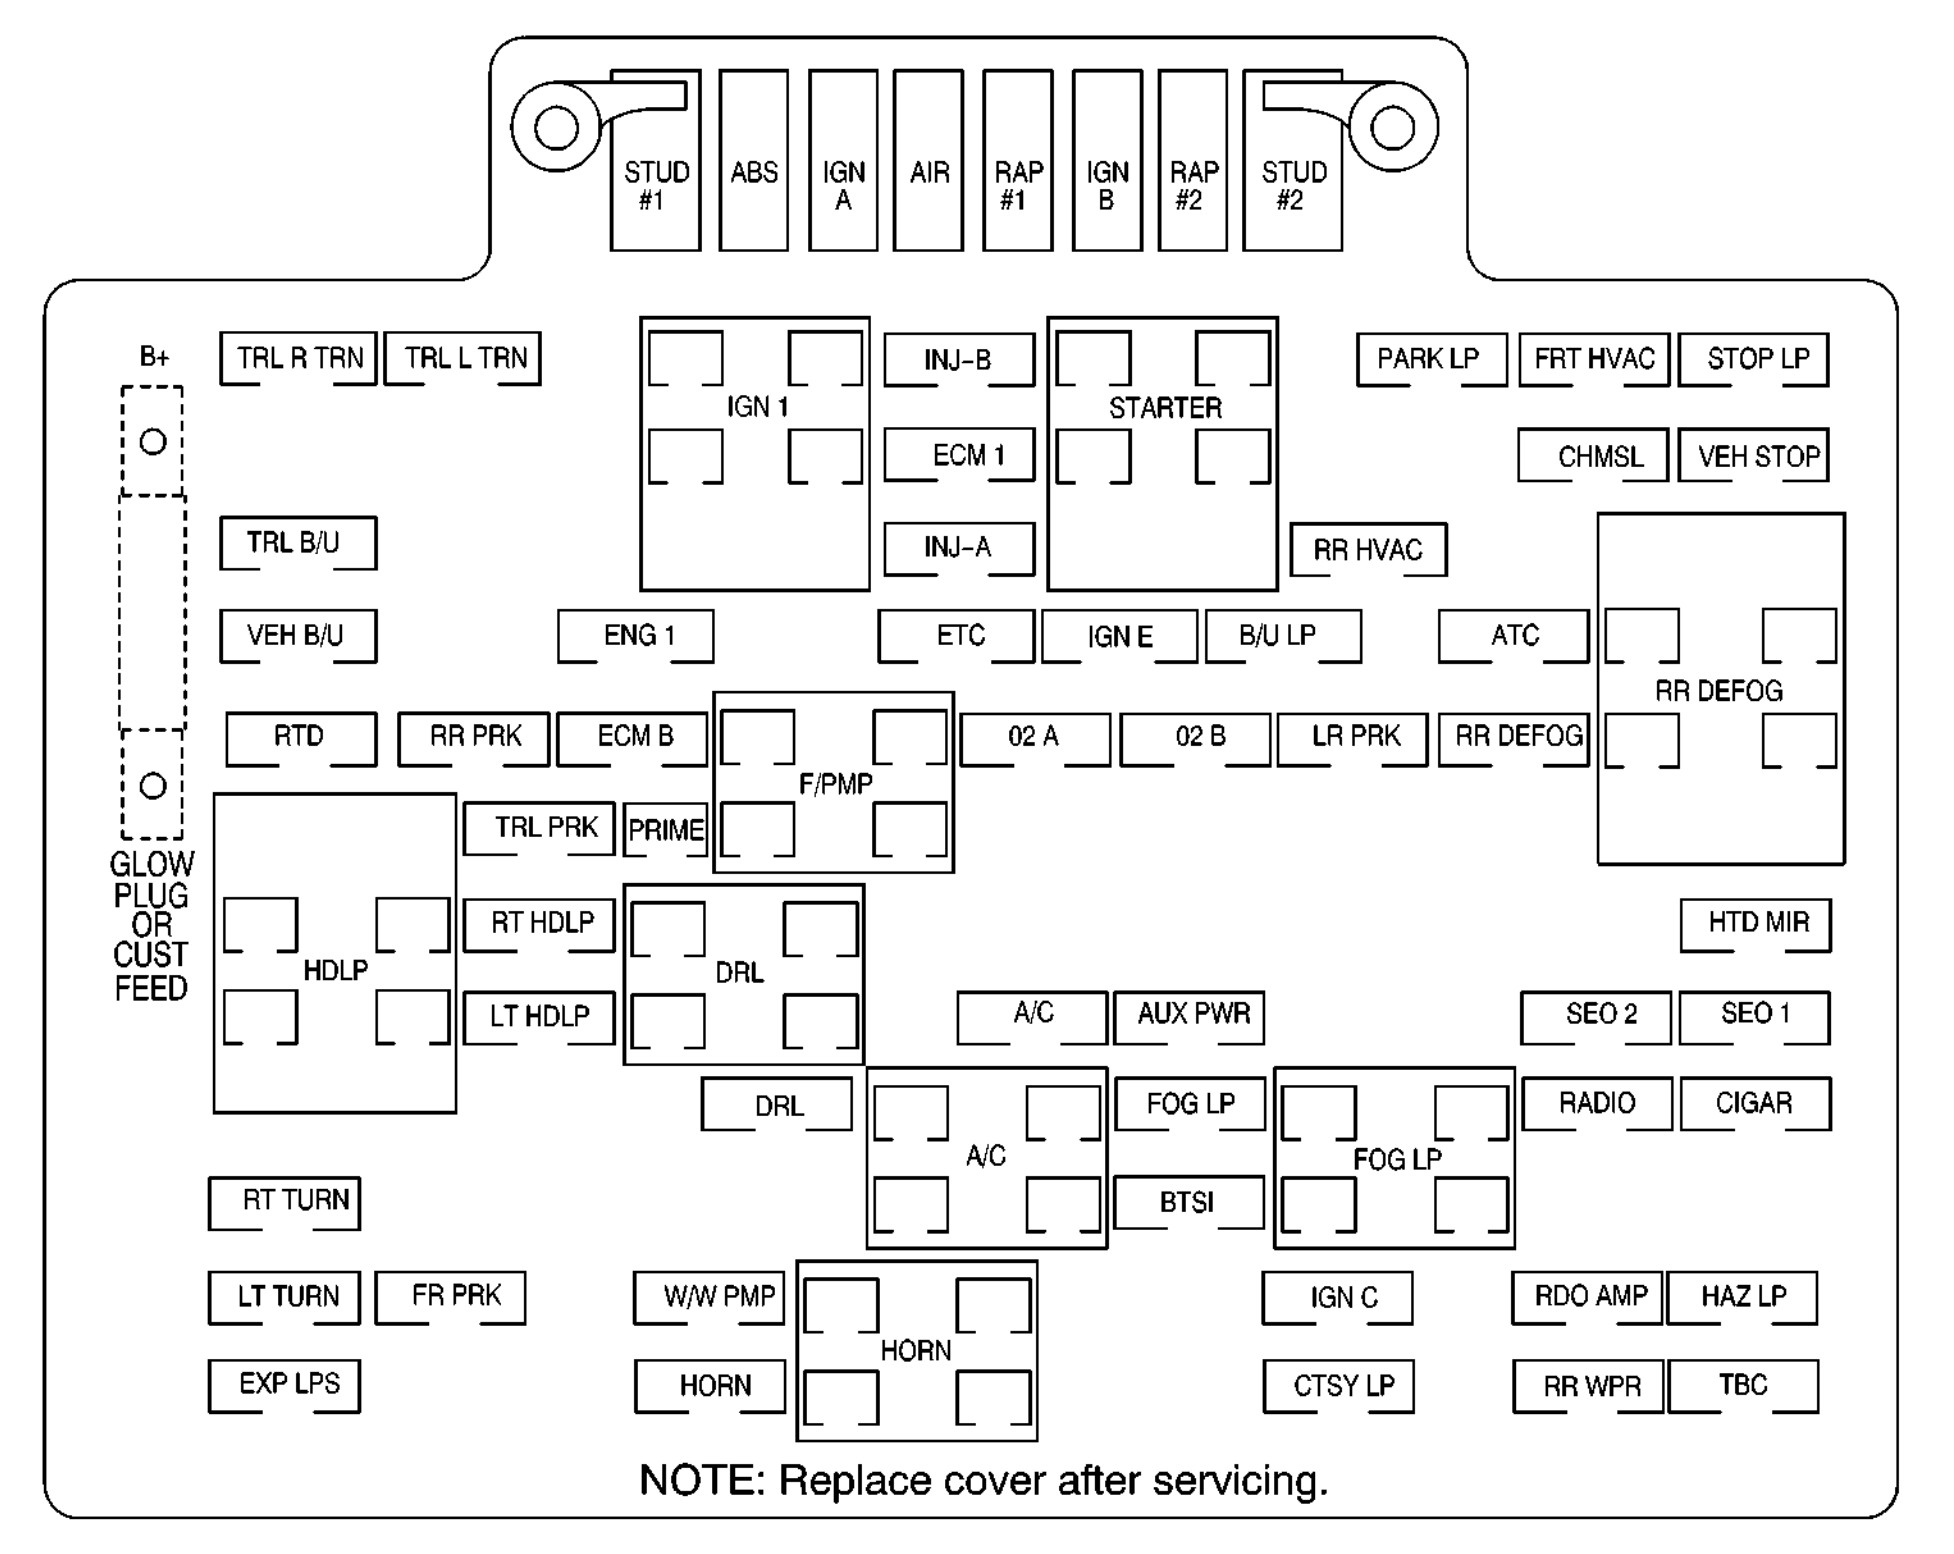 2000 continental fuse box wiring diagram online 2009 Lincoln MKZ Fuse Box fuse box diagram 2001 lincoln town car interior 2000 lincoln continental fuse box location 2000 continental fuse box